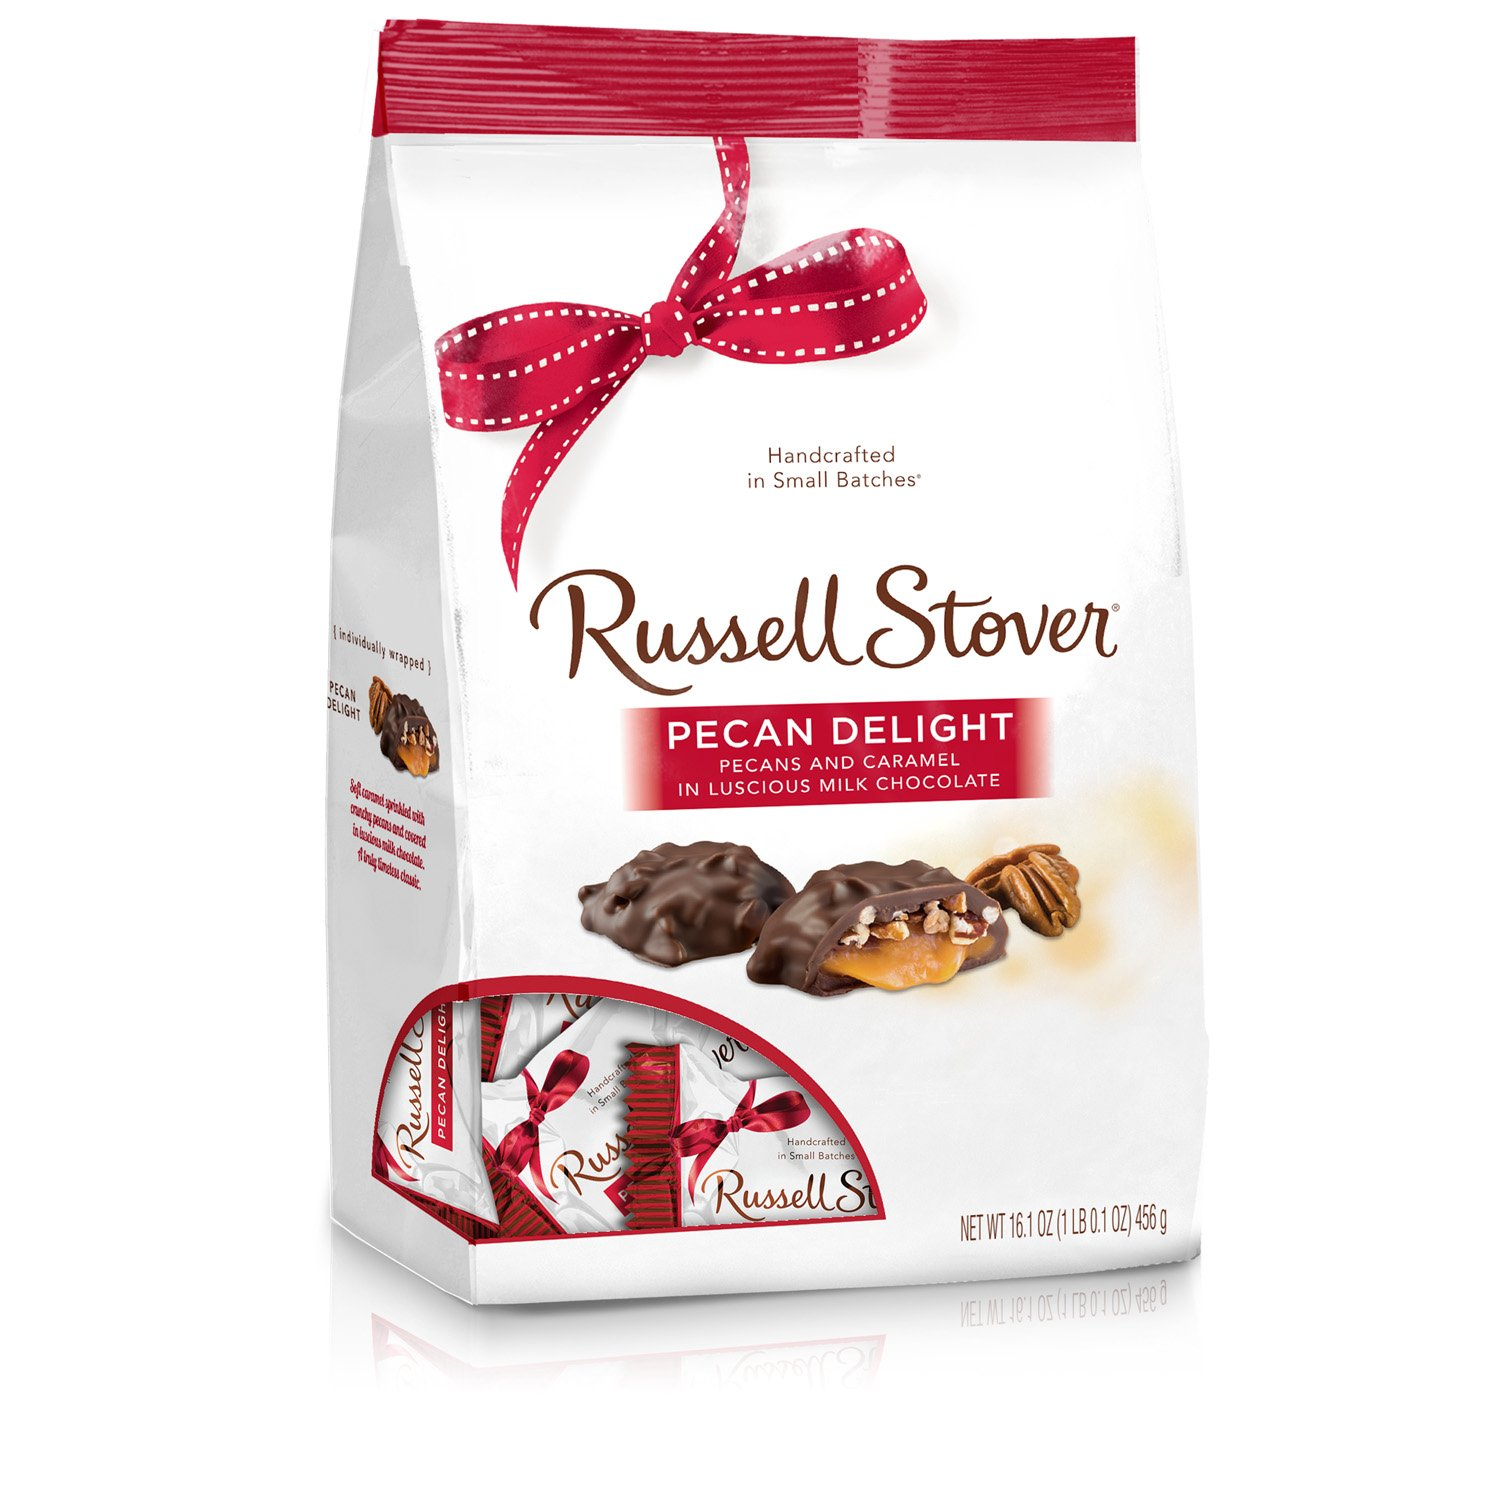 Russell Stover Pecan Delights, 16.1 Ounce Bag (4 Count)